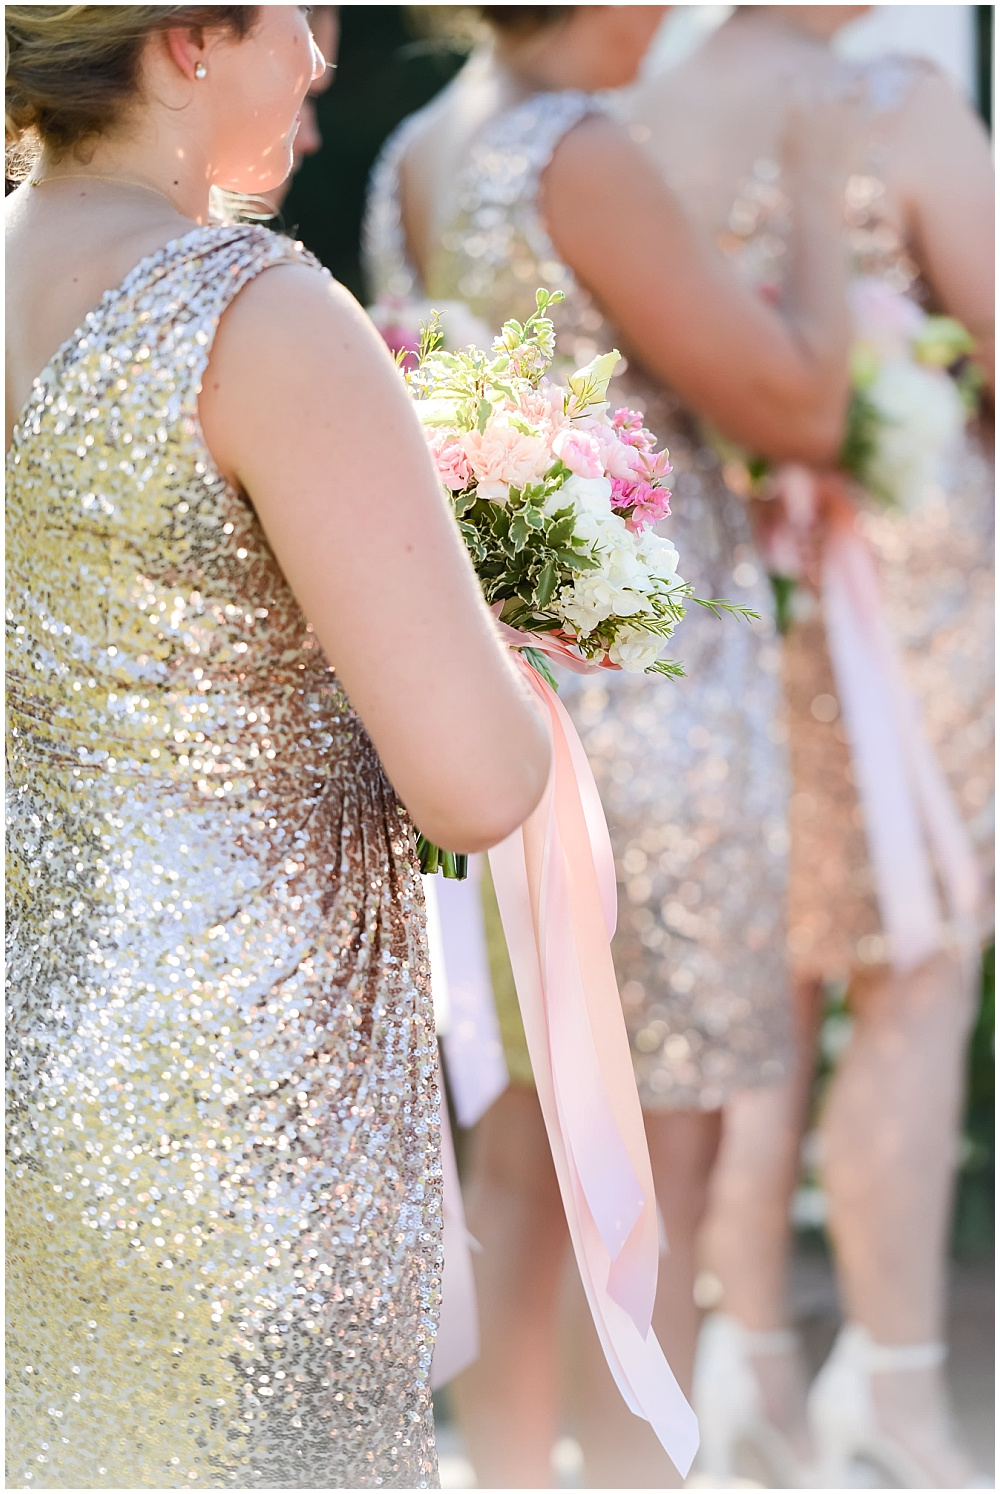 Gold glitter bridesmaid dresses with blush, white and green bridesmaid bouquets | Mustard Seed Gardens Wedding by Sara Ackermann Photography & Jessica Dum Wedding Coordination